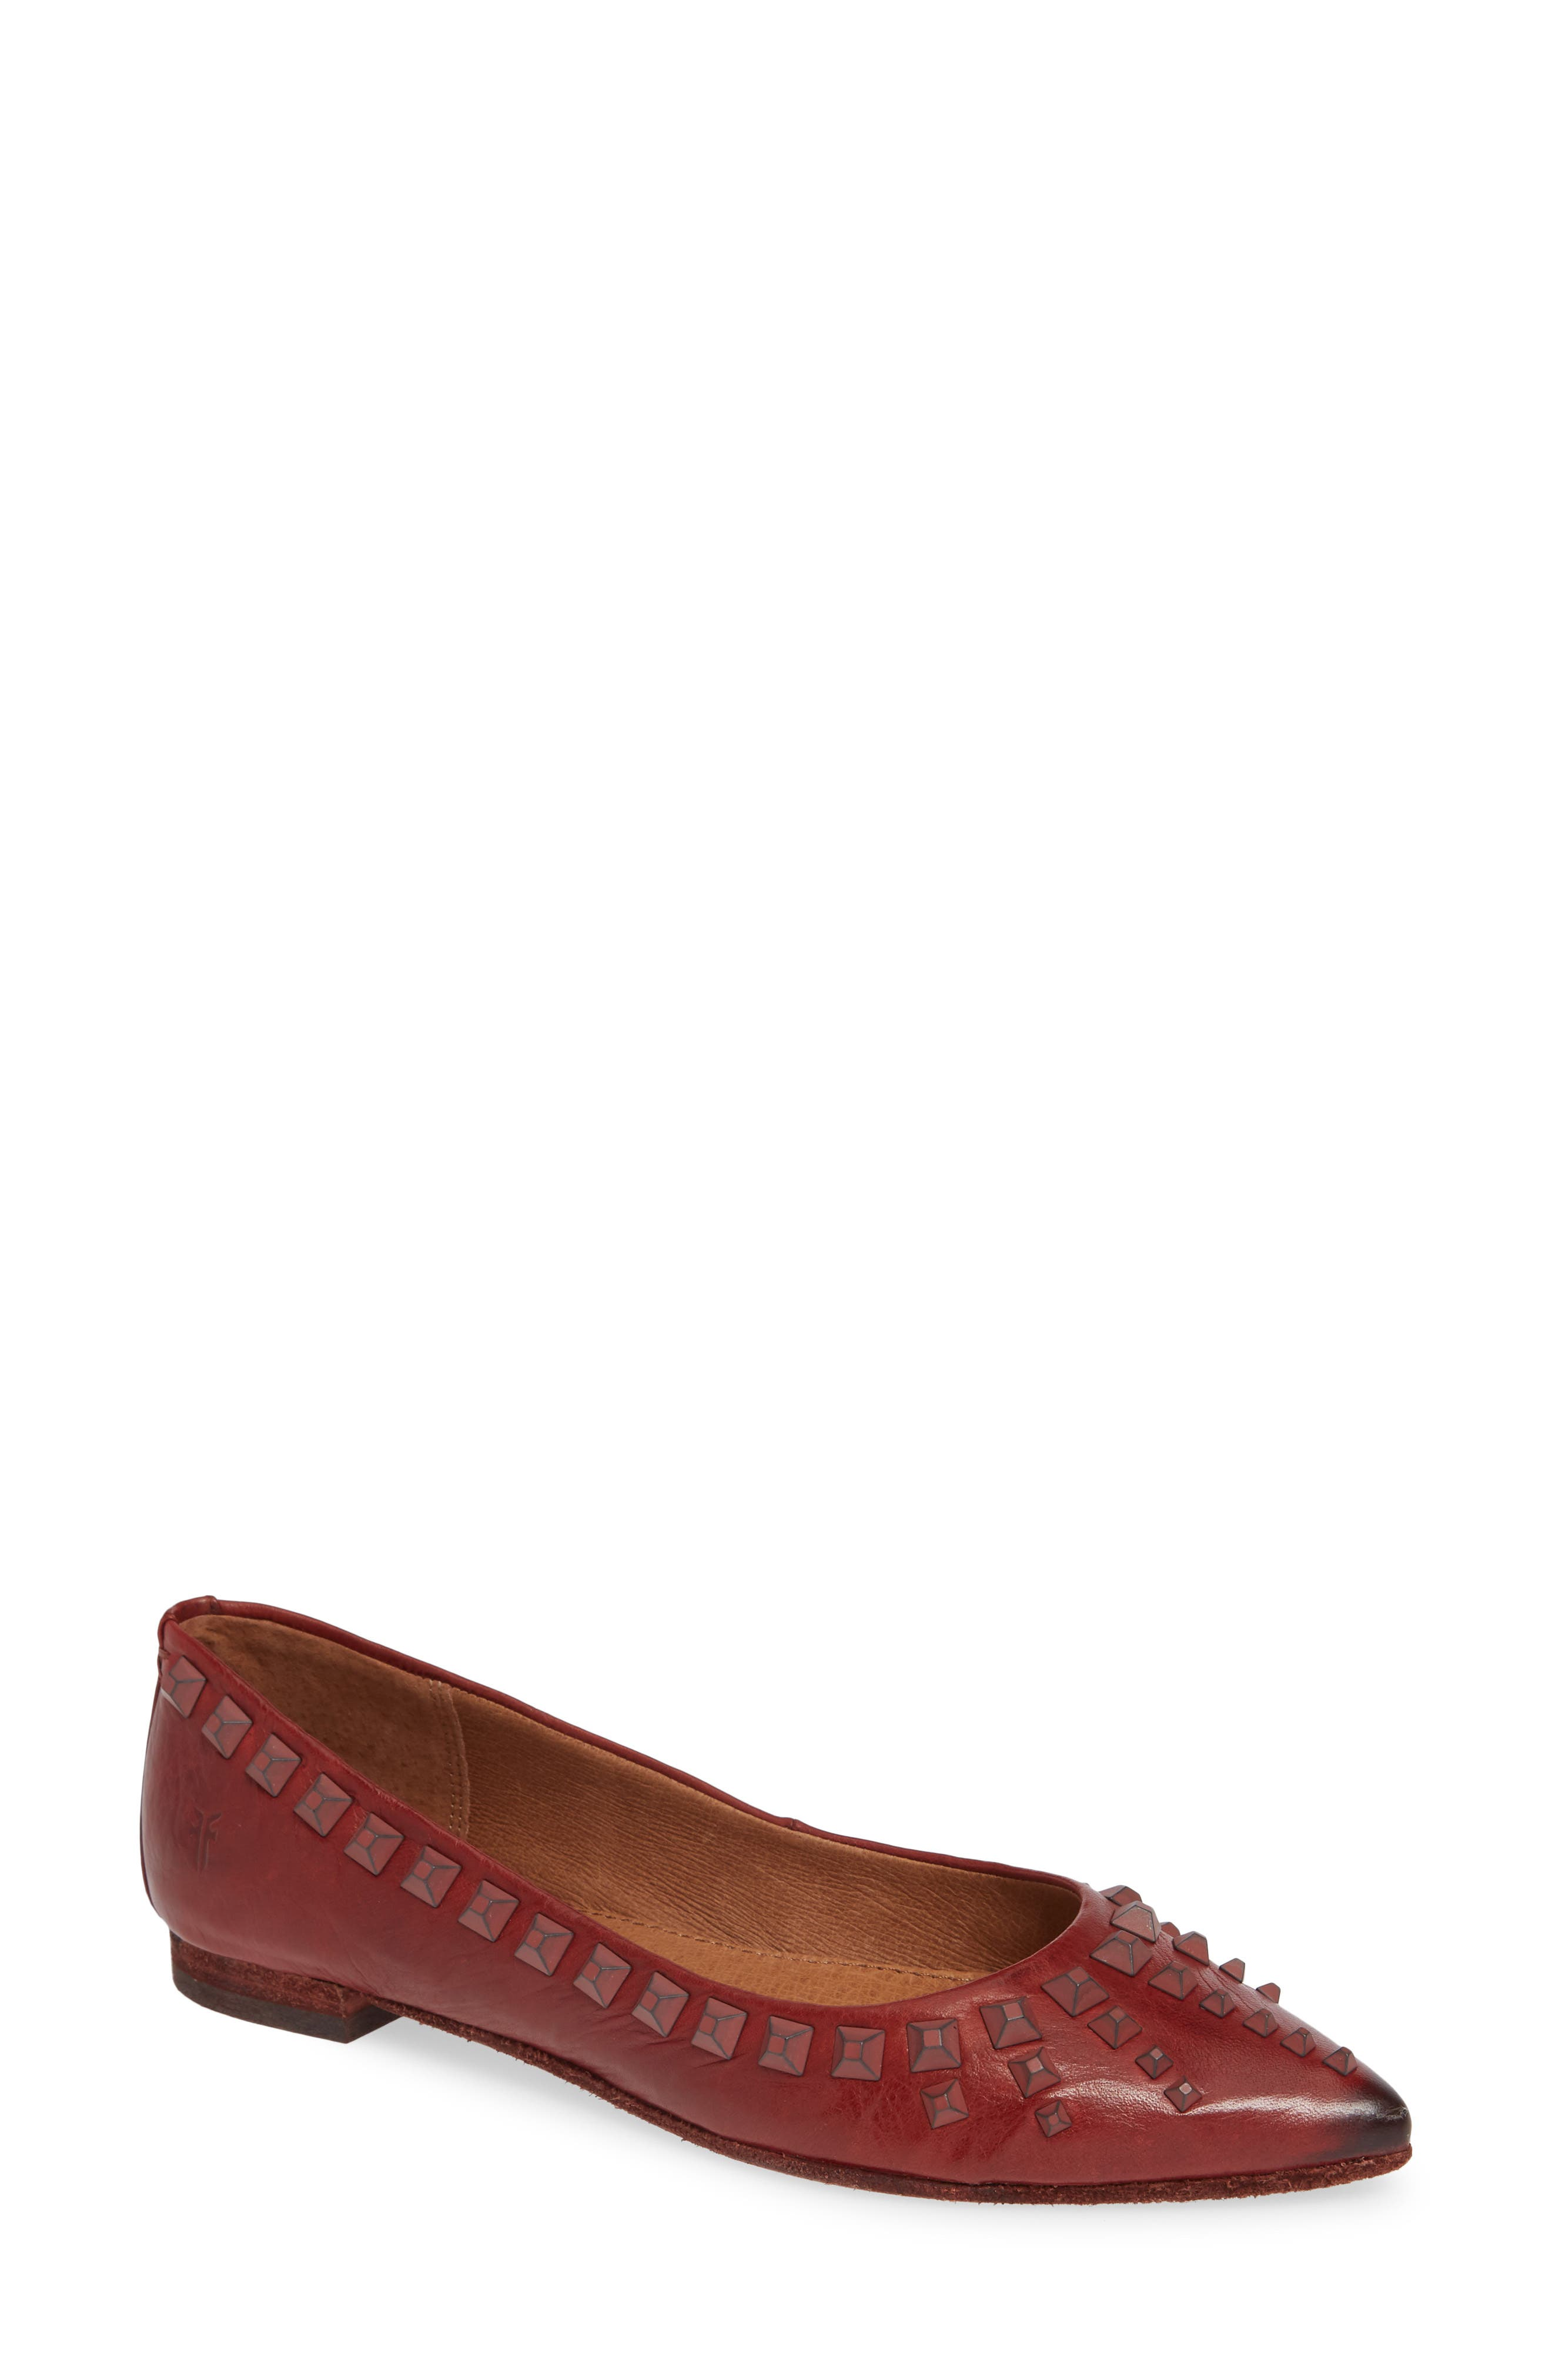 Sienna Deco Stud Ballet Flat,                         Main,                         color, RED CLAY LEATHER